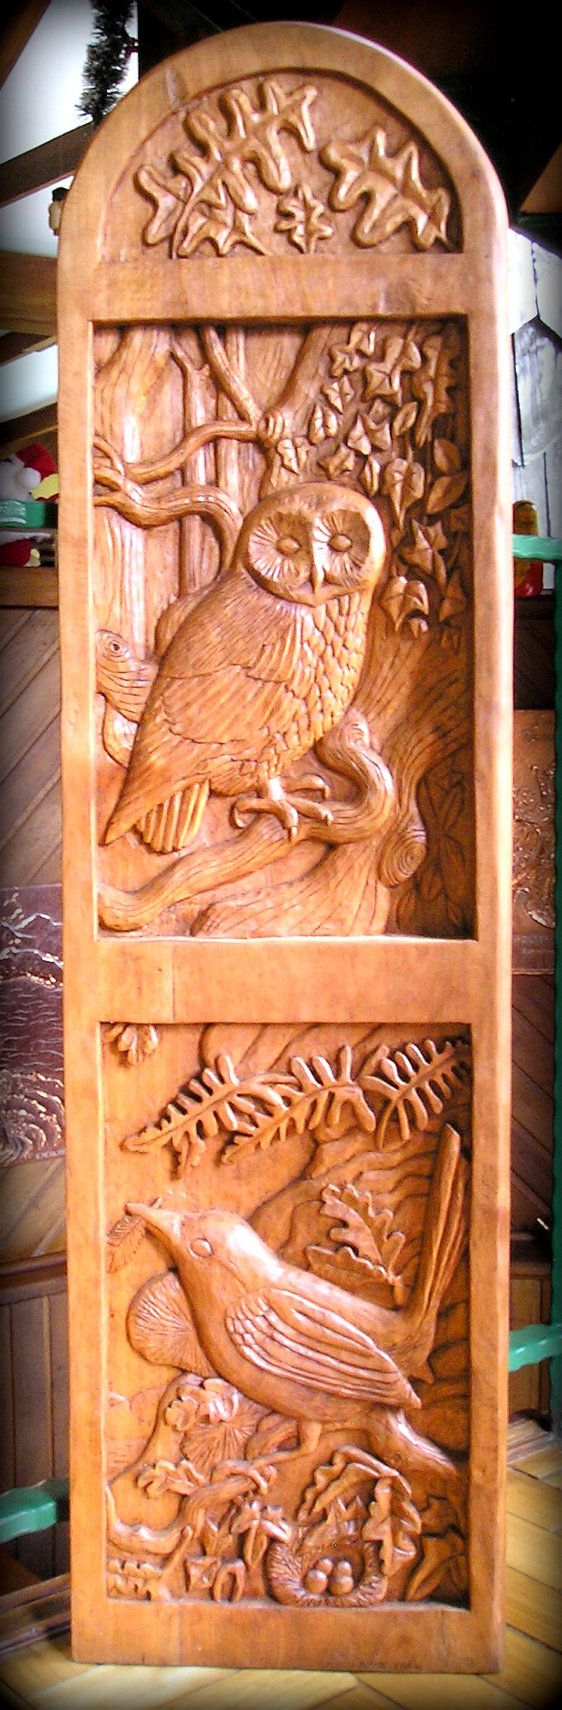 Owl and sparrow wood carving handmade woodcarving